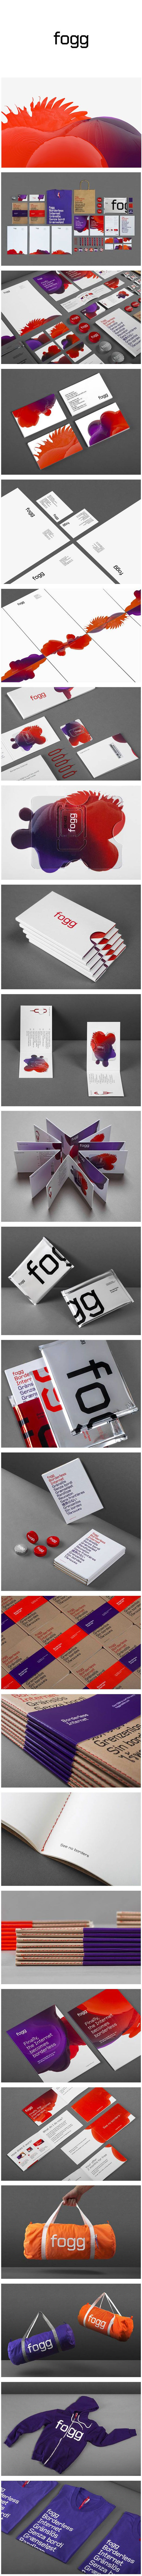 Fogg #identity #packaging #branding #marketing PD